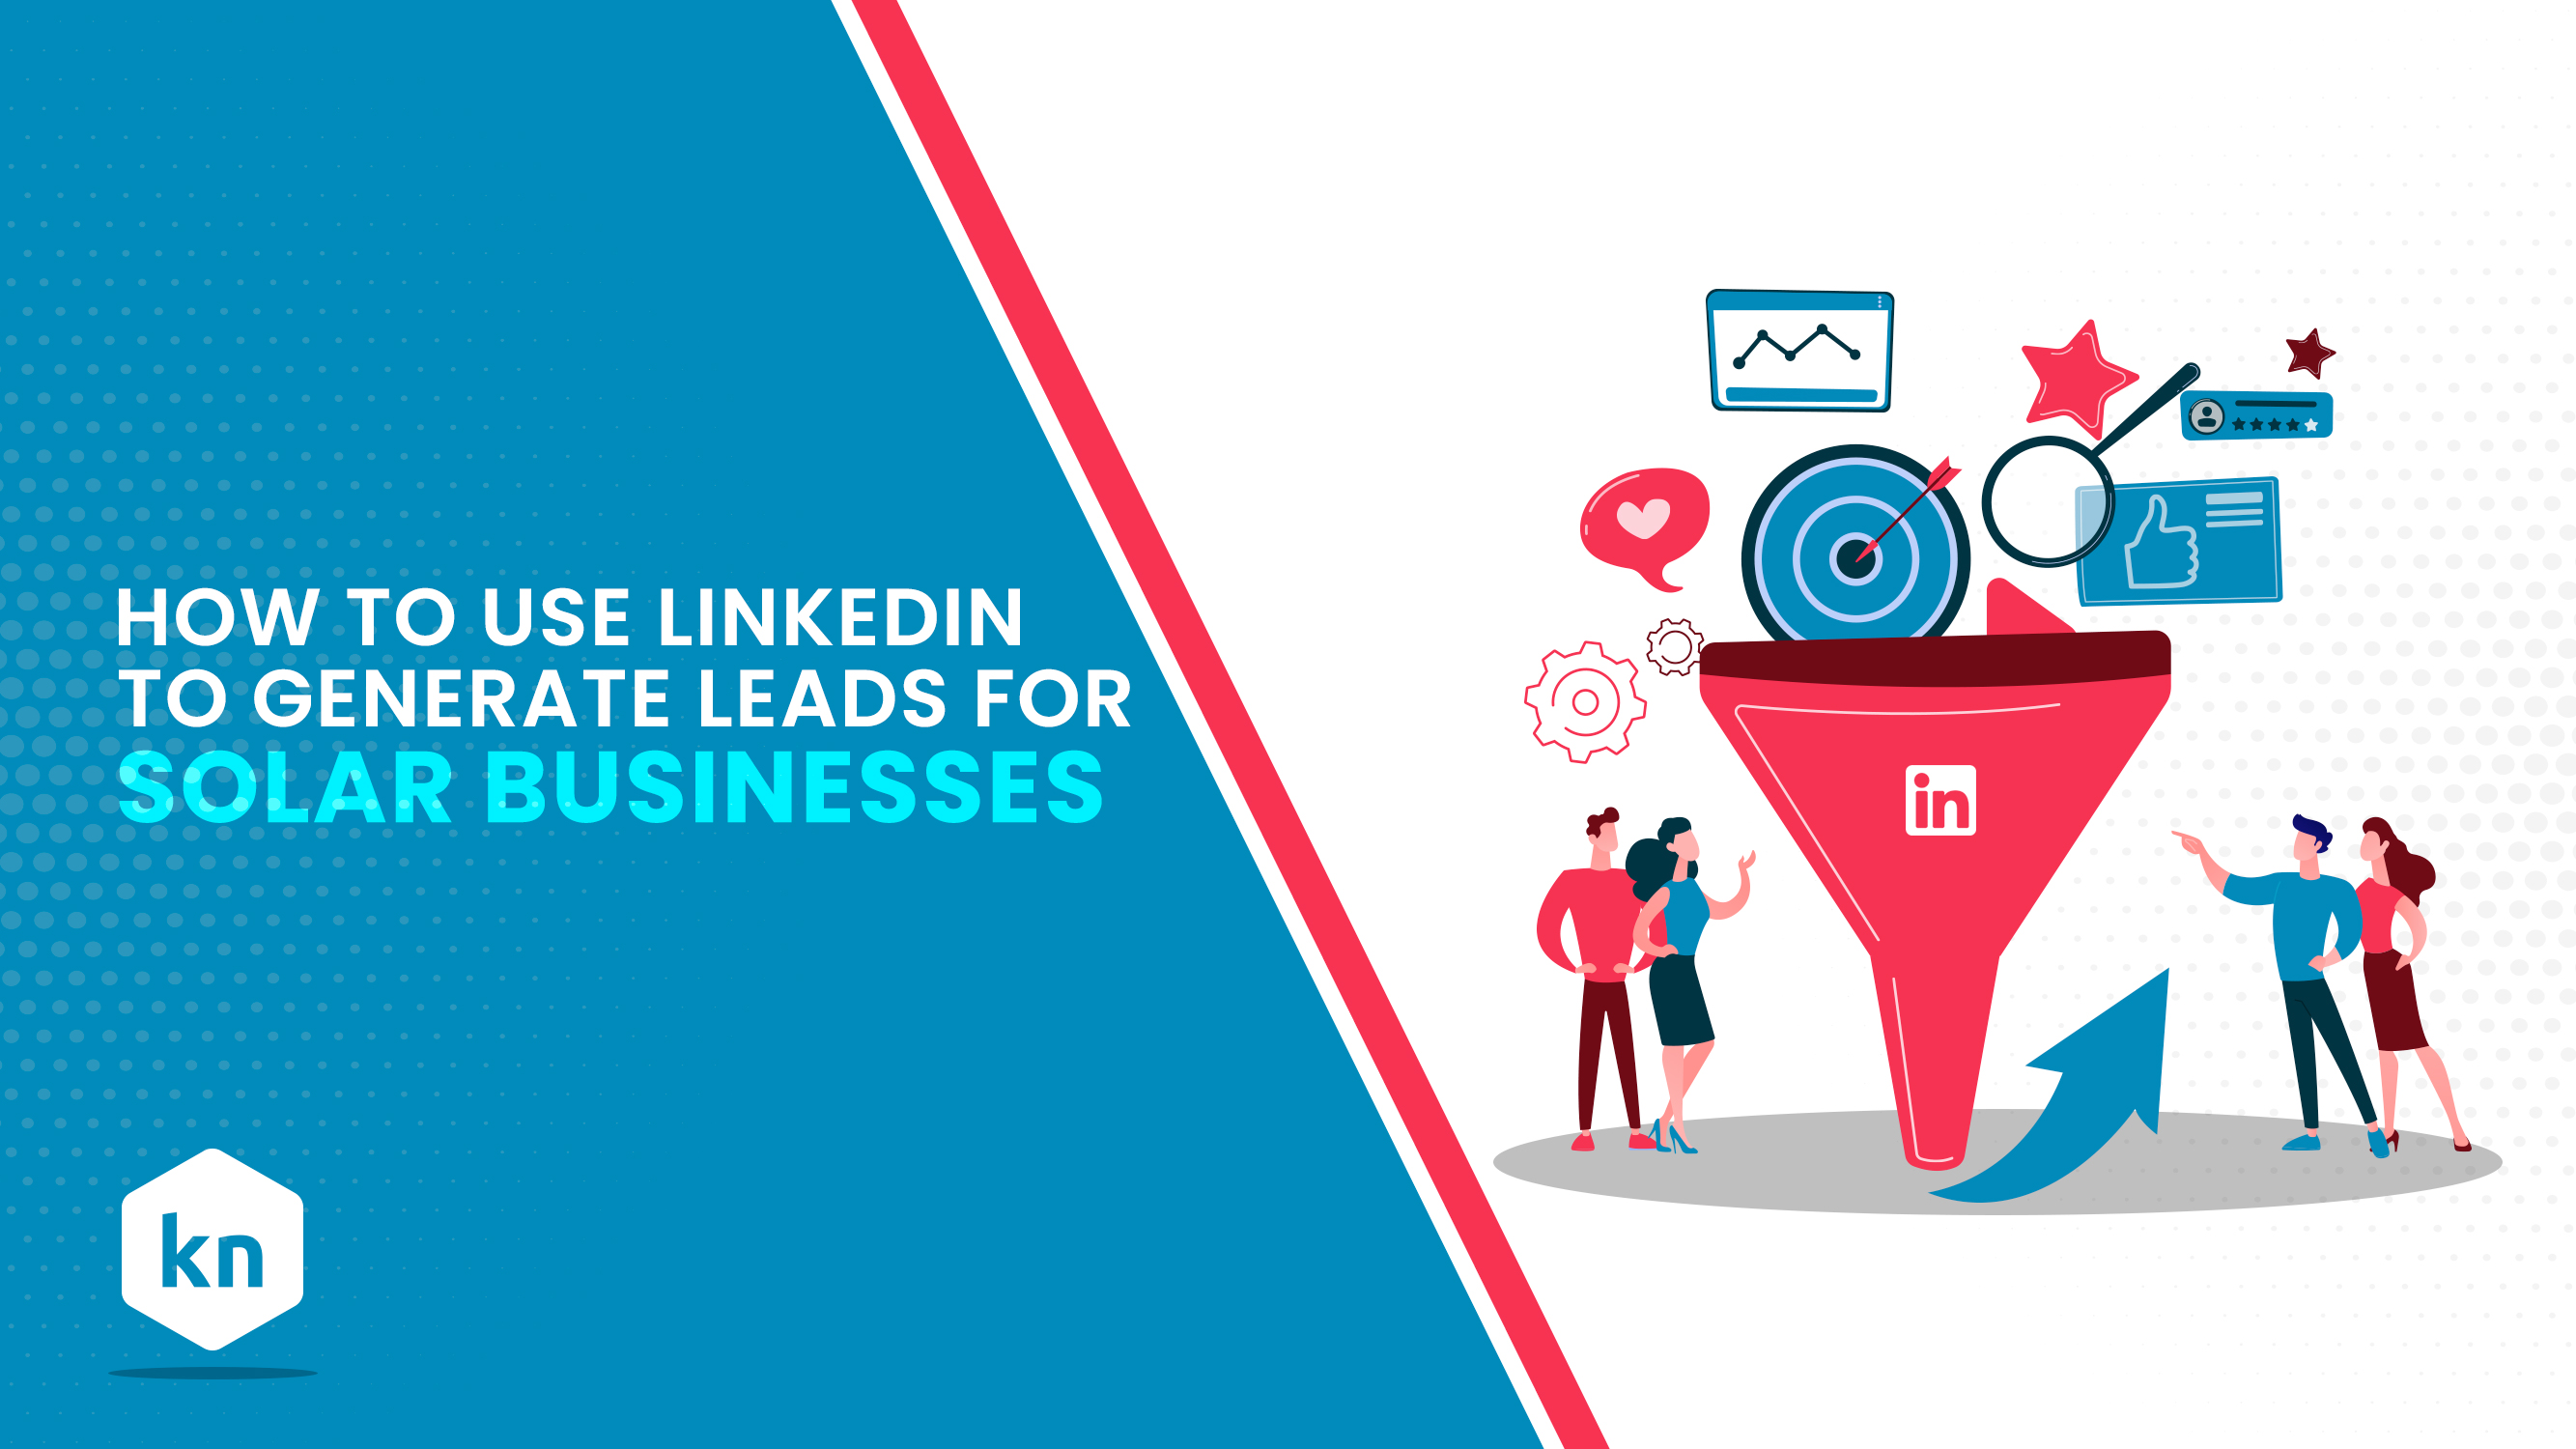 How To Use LinkedIn To Generate Leads For Solar Businesses